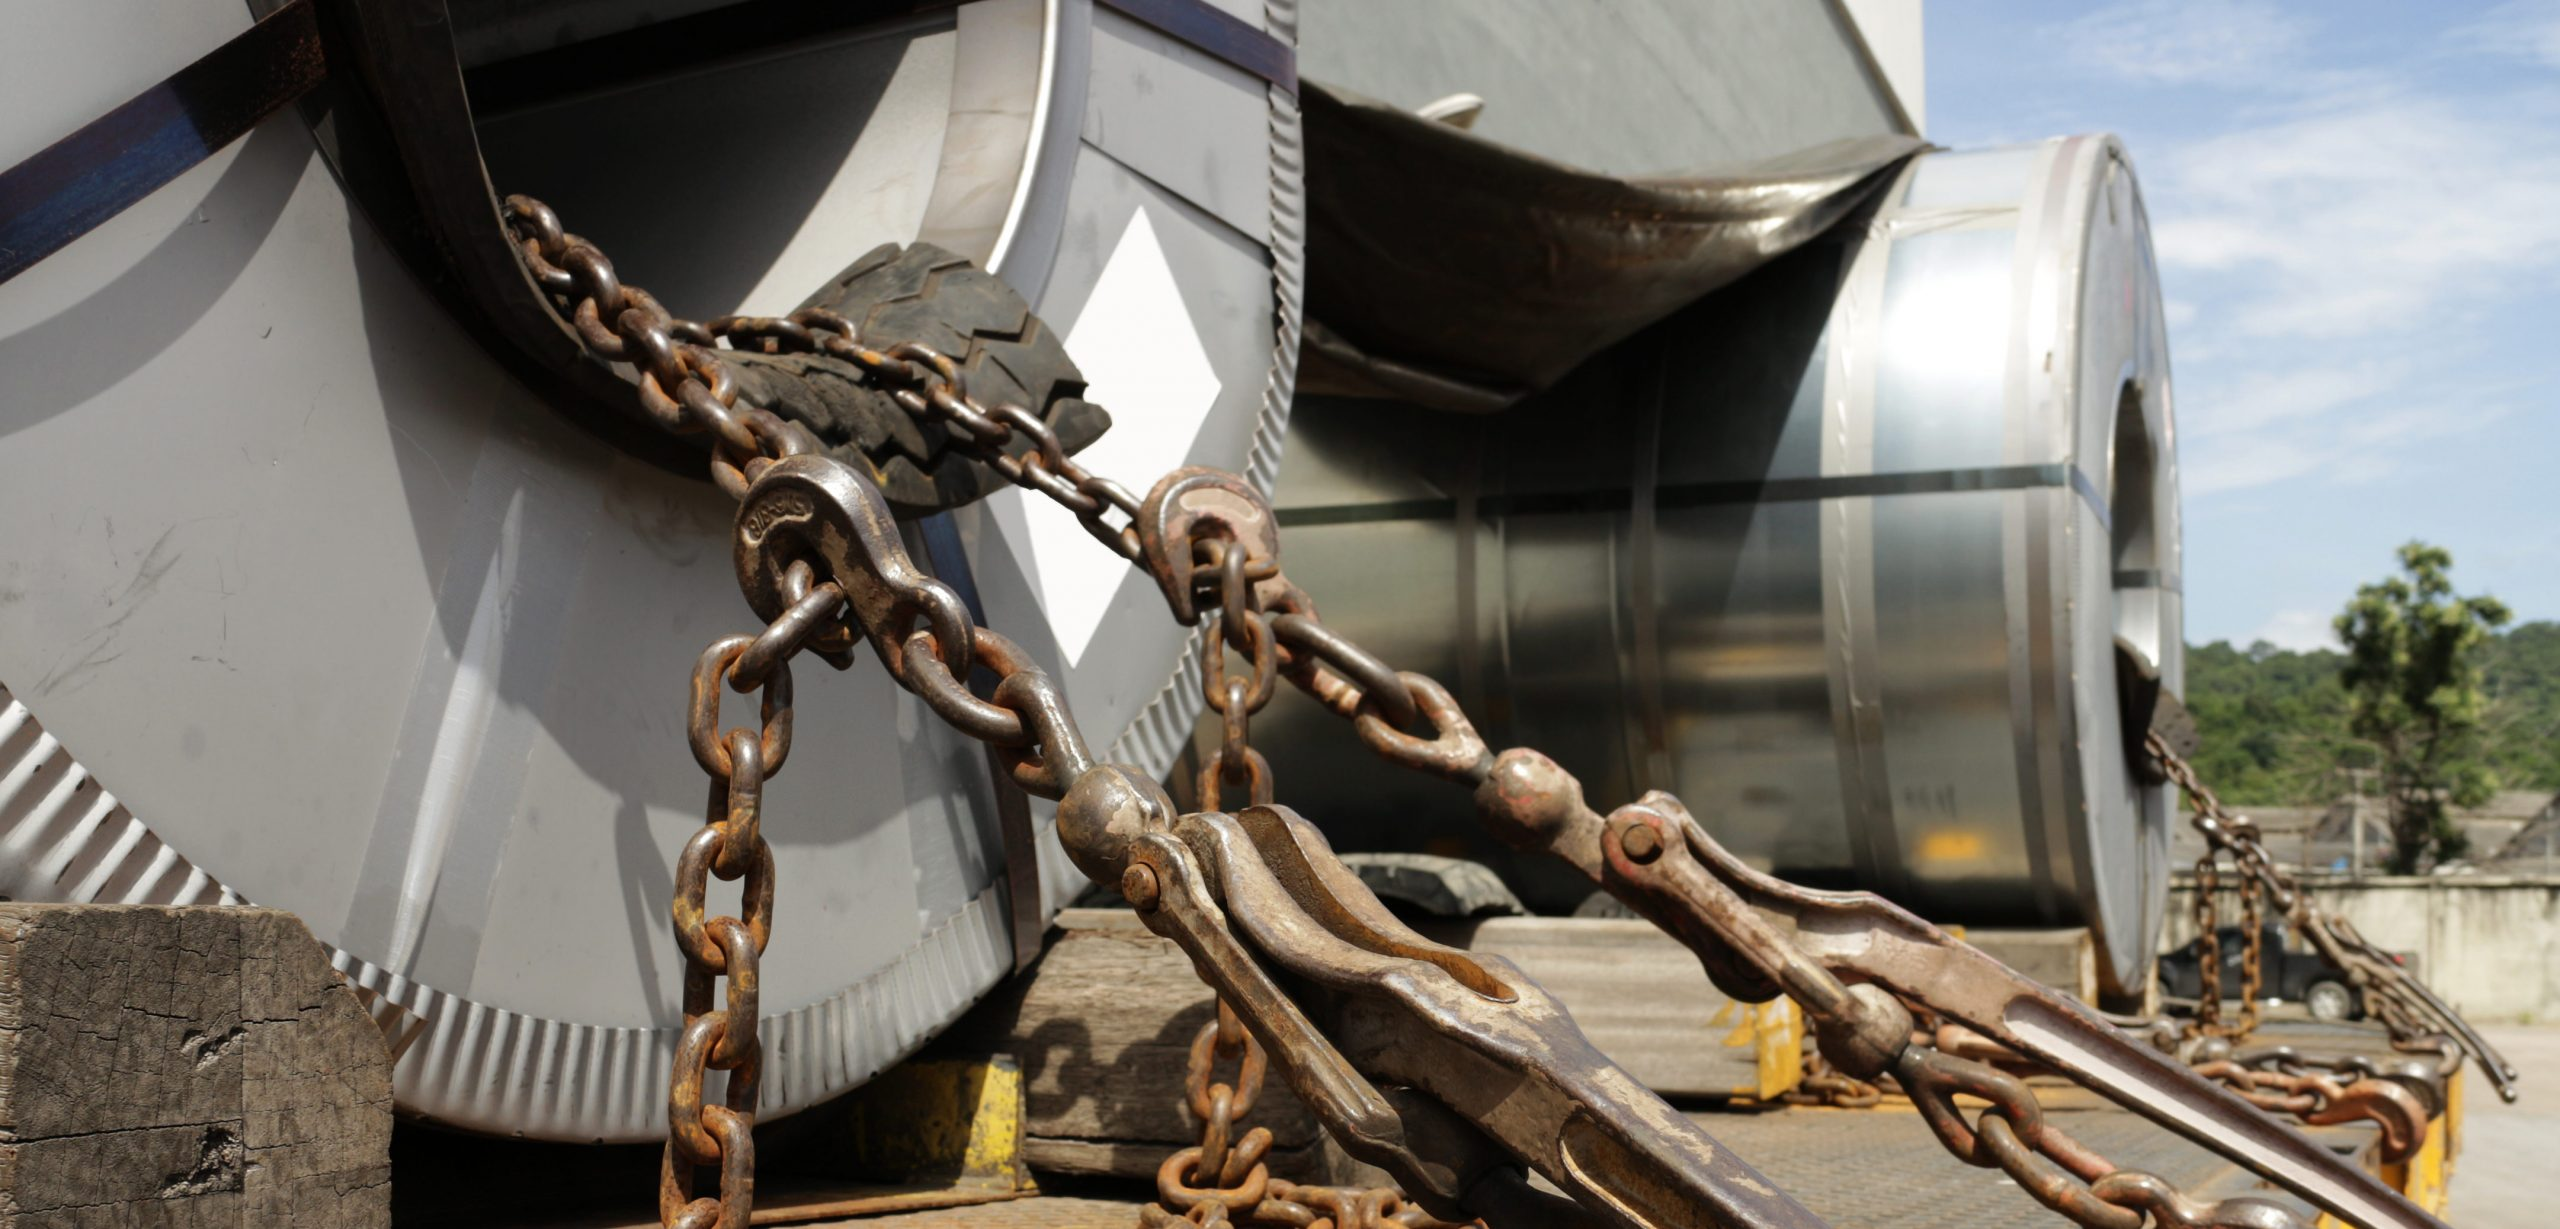 3 Critical Tire Chain Mistakes to Avoid